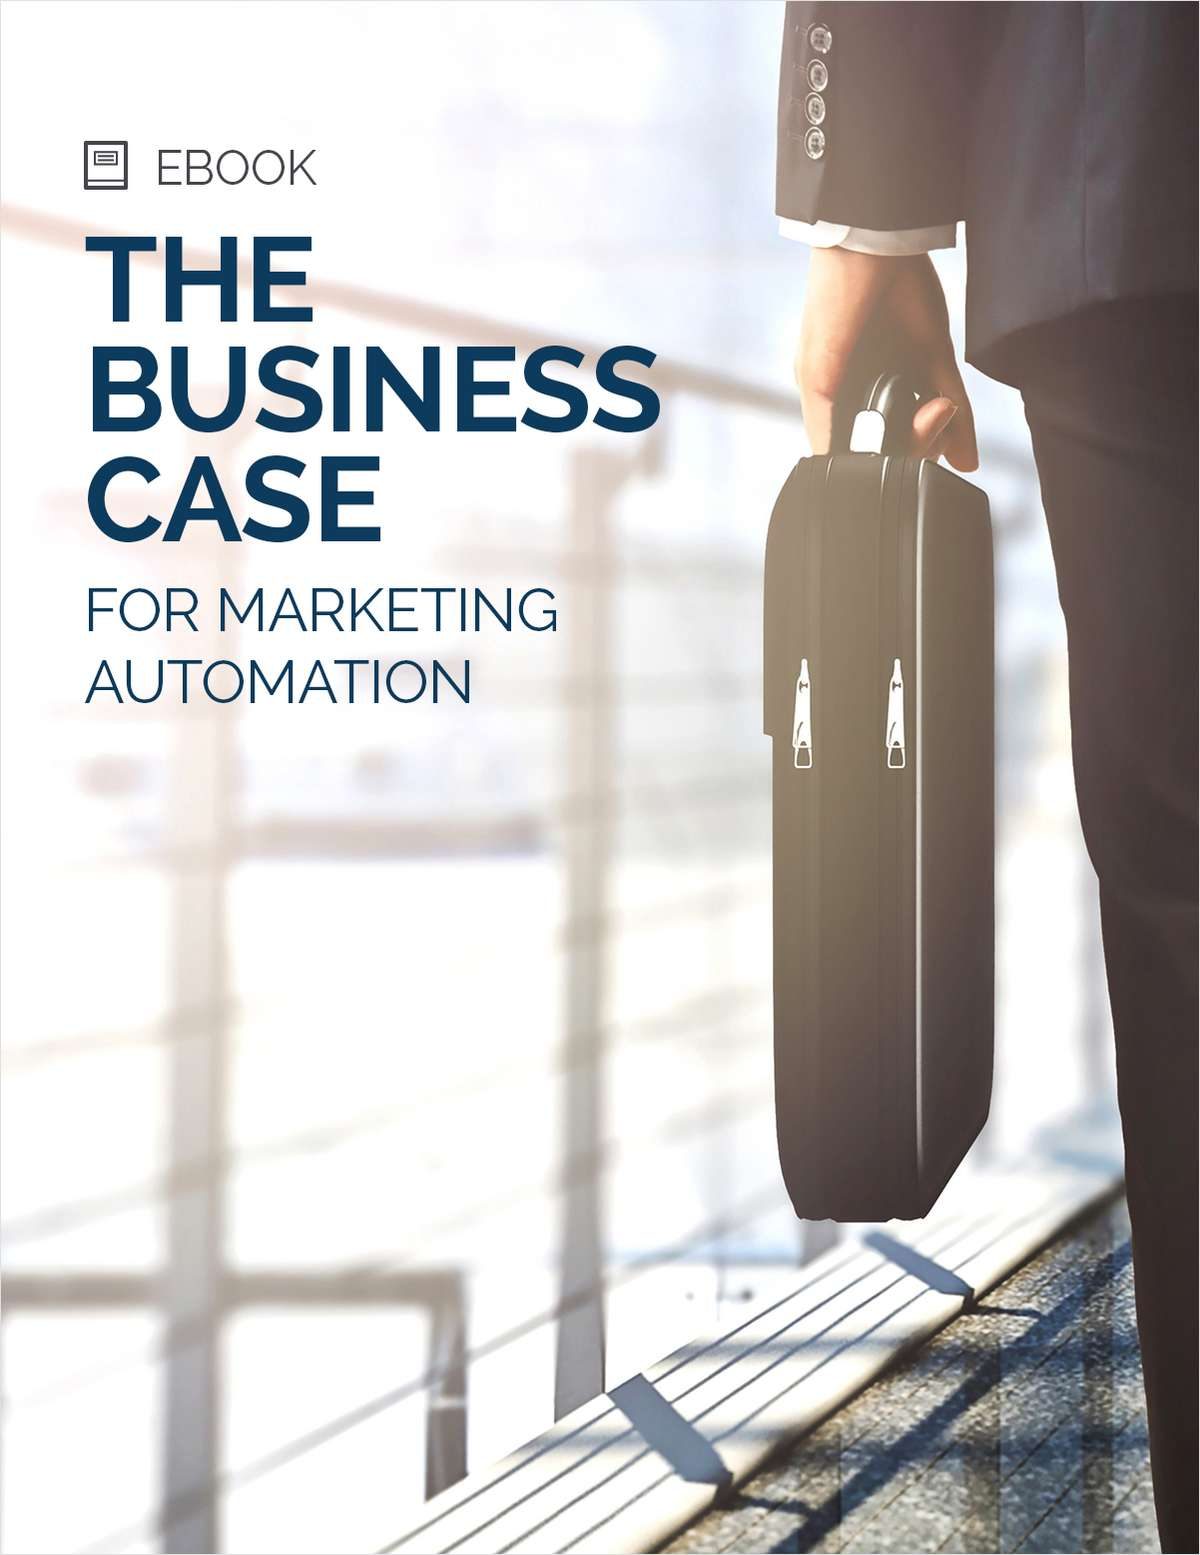 The Business Case for Marketing Automation